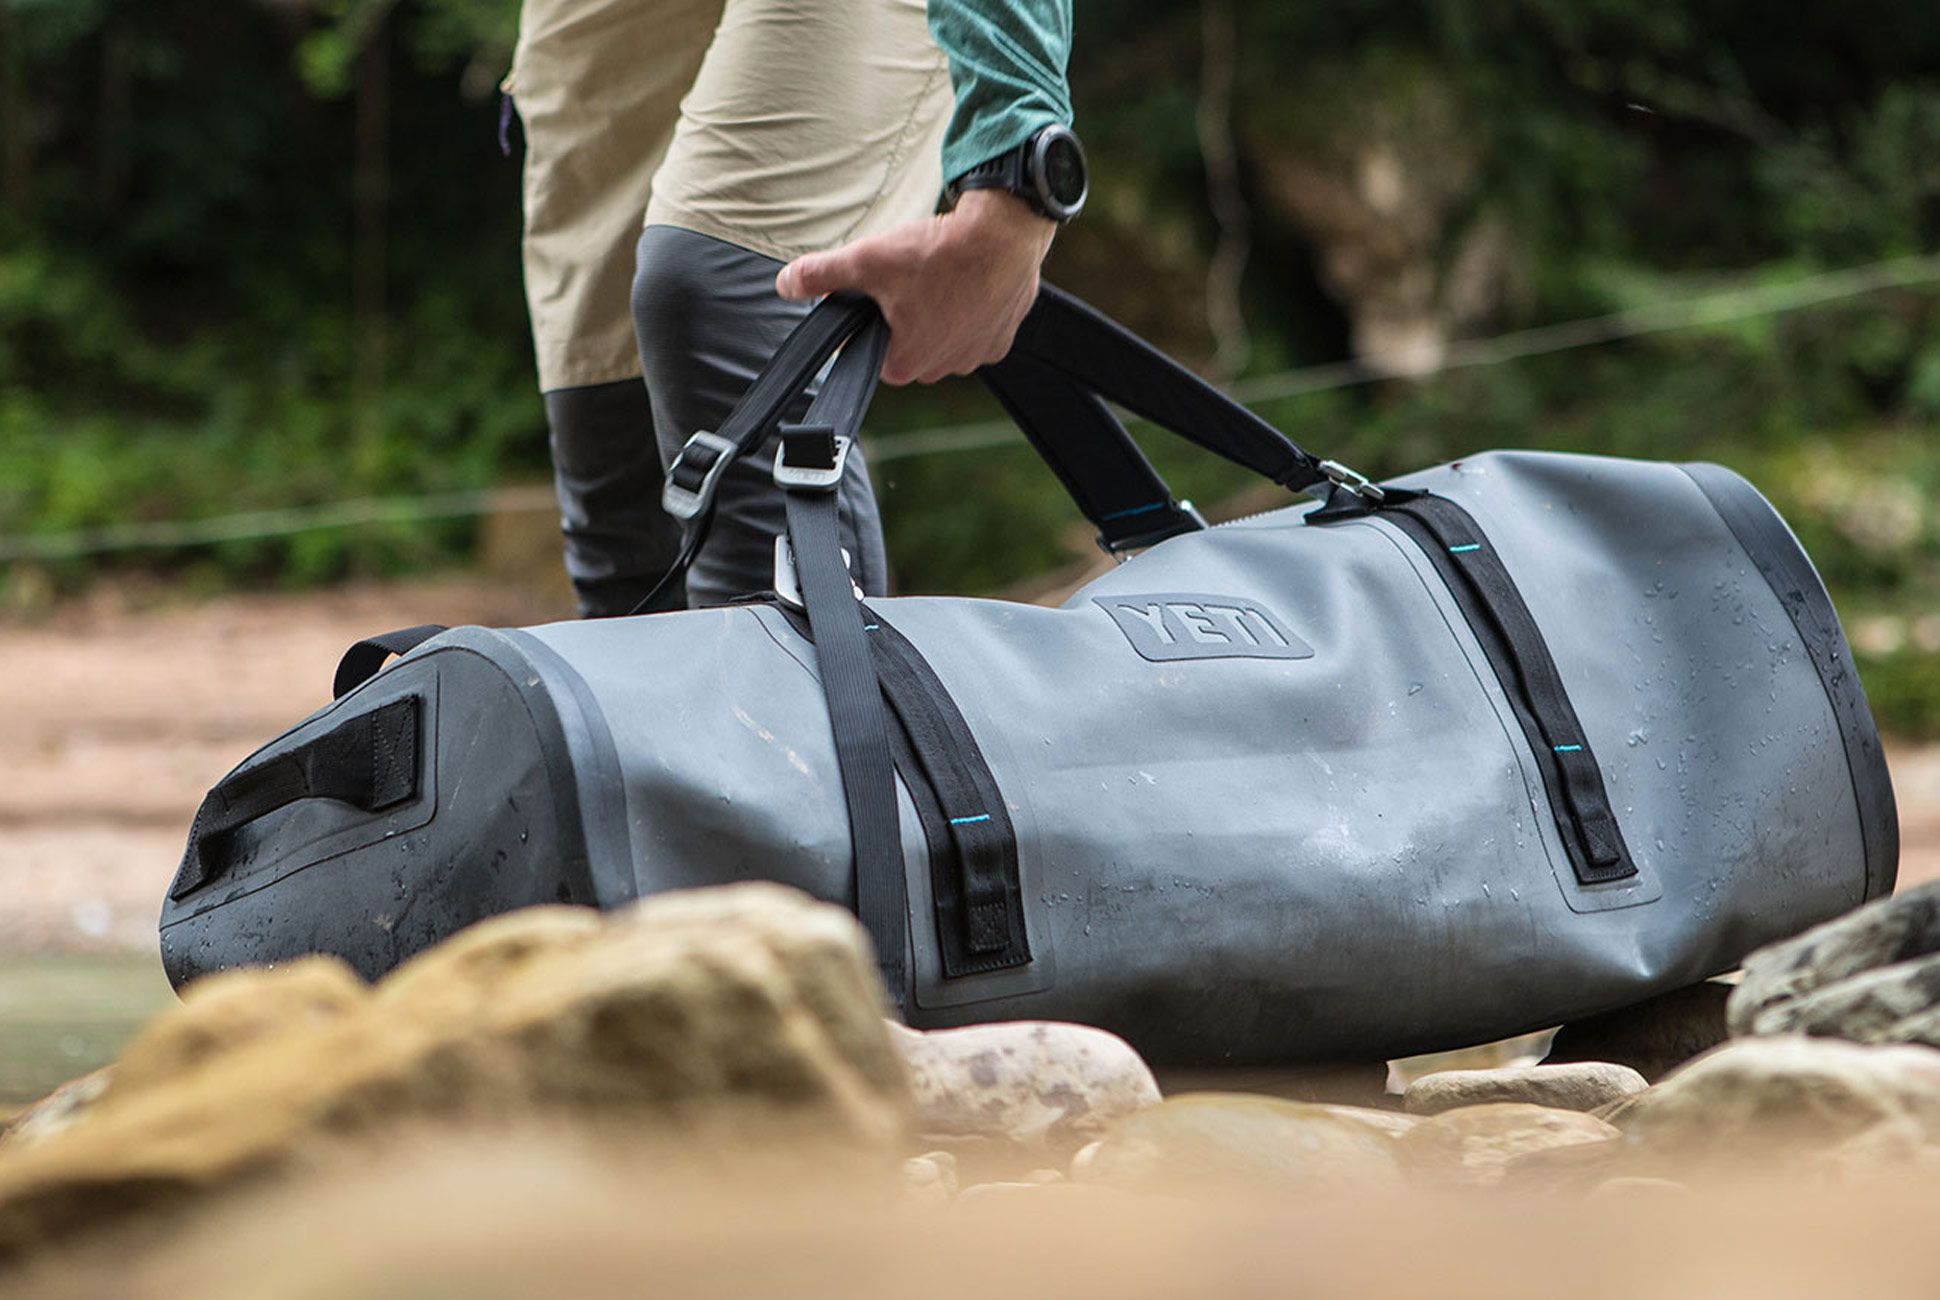 2018 Travel Gear The 10 Best Rugged Travel Duffels Of 2019 Gear Patrol